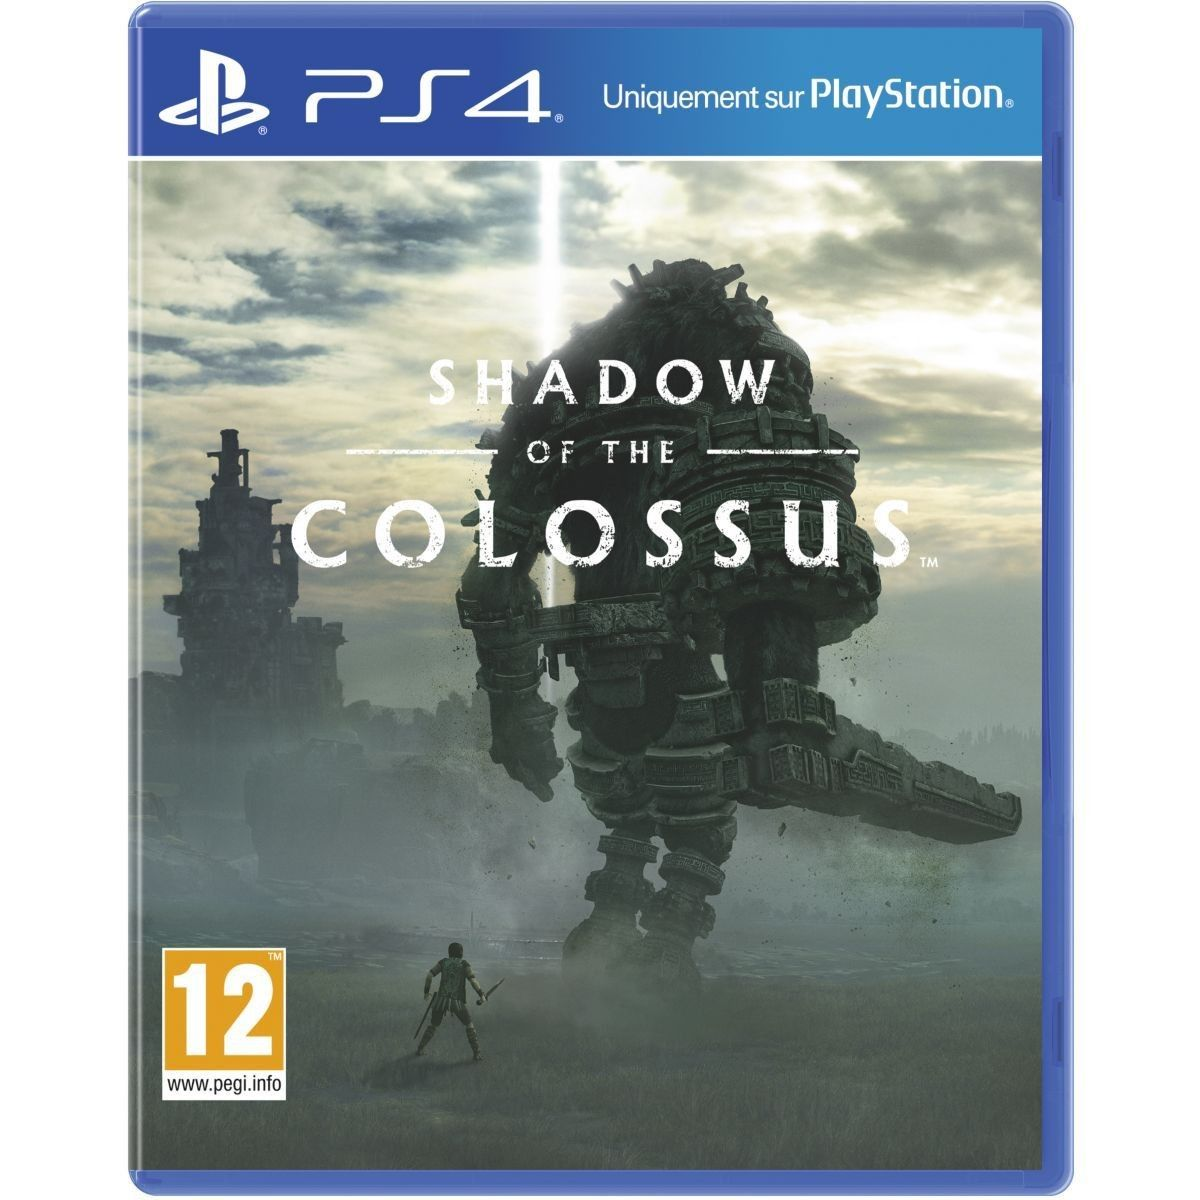 Jeu Ps4 Shadow Of The Colossus Taille Taille Unique Jeux Ps4